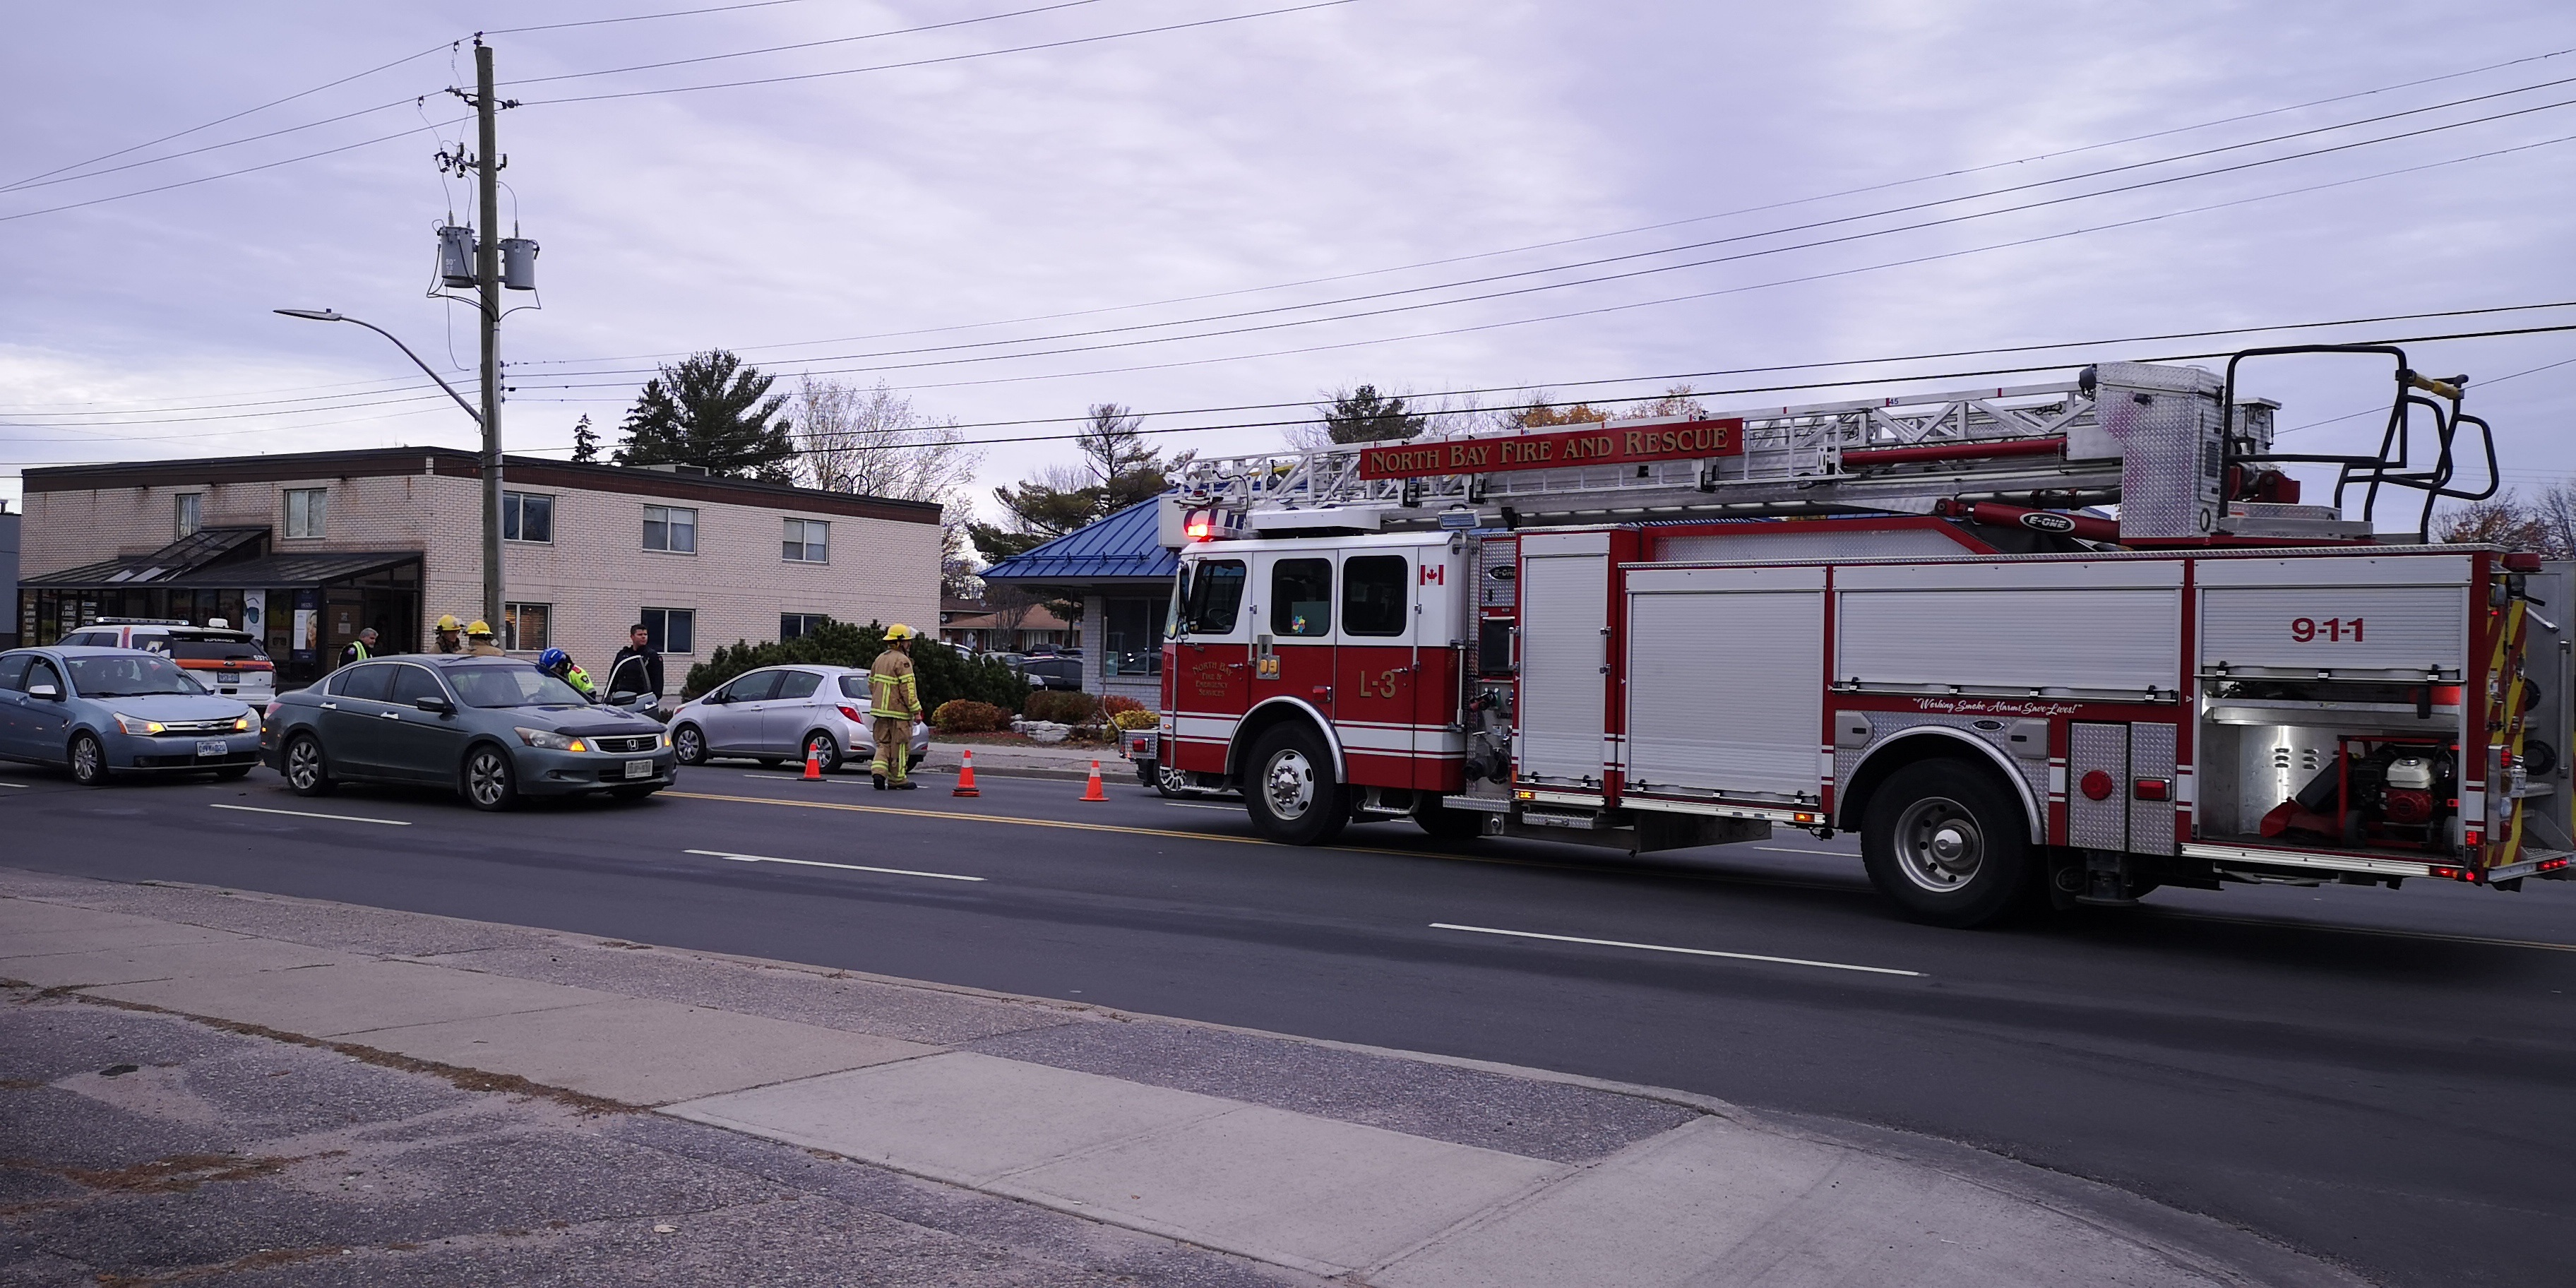 Twin accidents slow rush hour Lakeshore traffic - BayToday ca